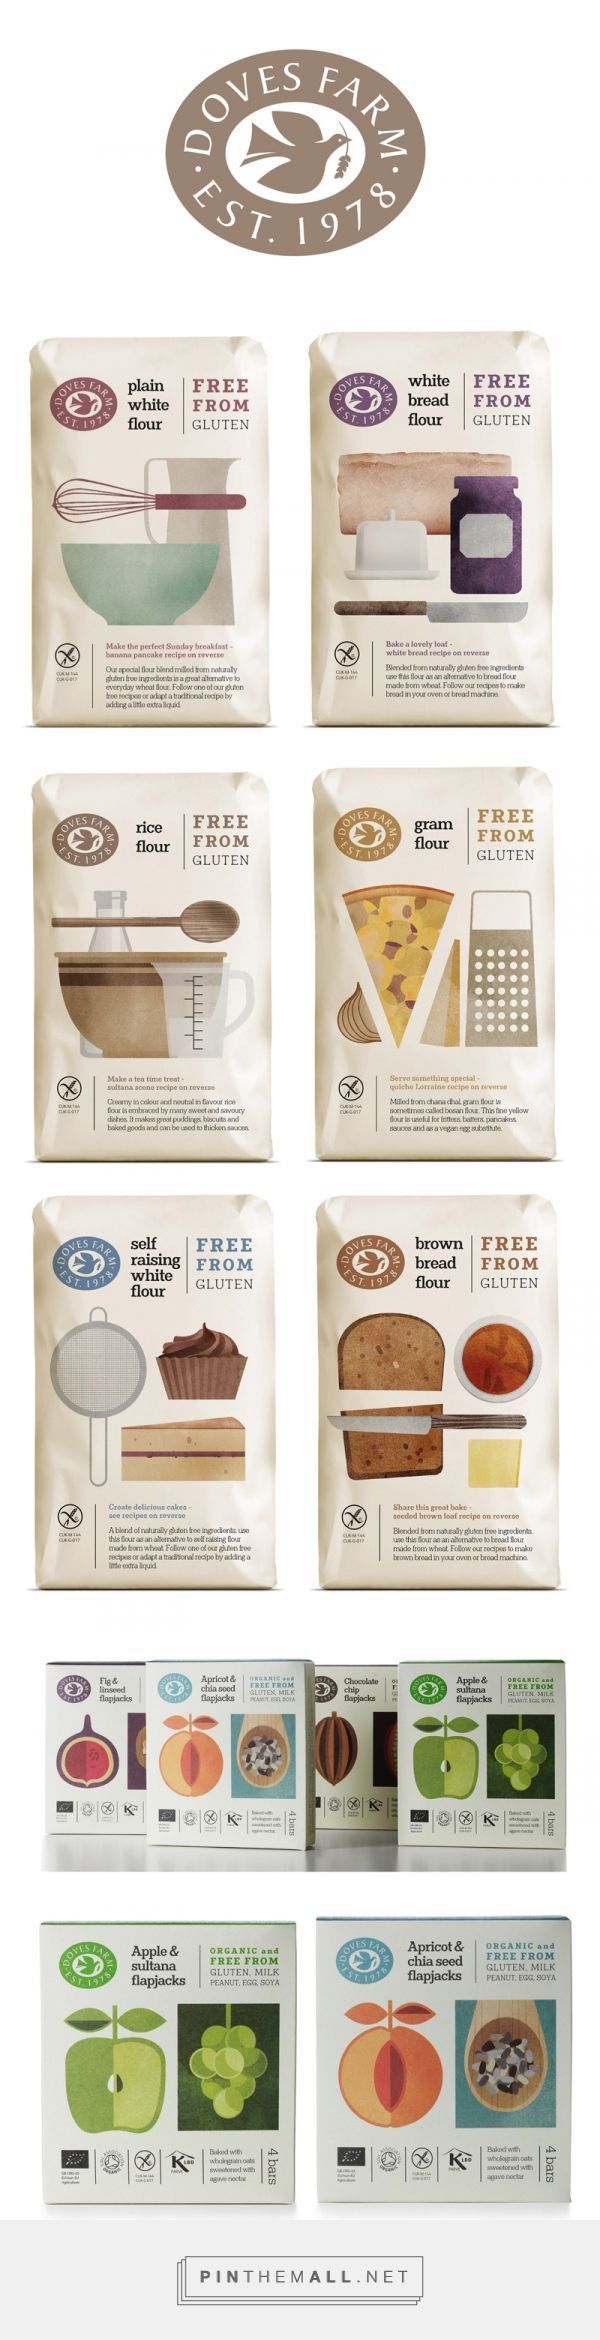 Studio h Doves Farm branding & packaging design curated by Packaging Diva PD. Simple illustration style created for their glu-ten free flour range conveys ease of baking and creating delicious food from recipes on the back of pack.